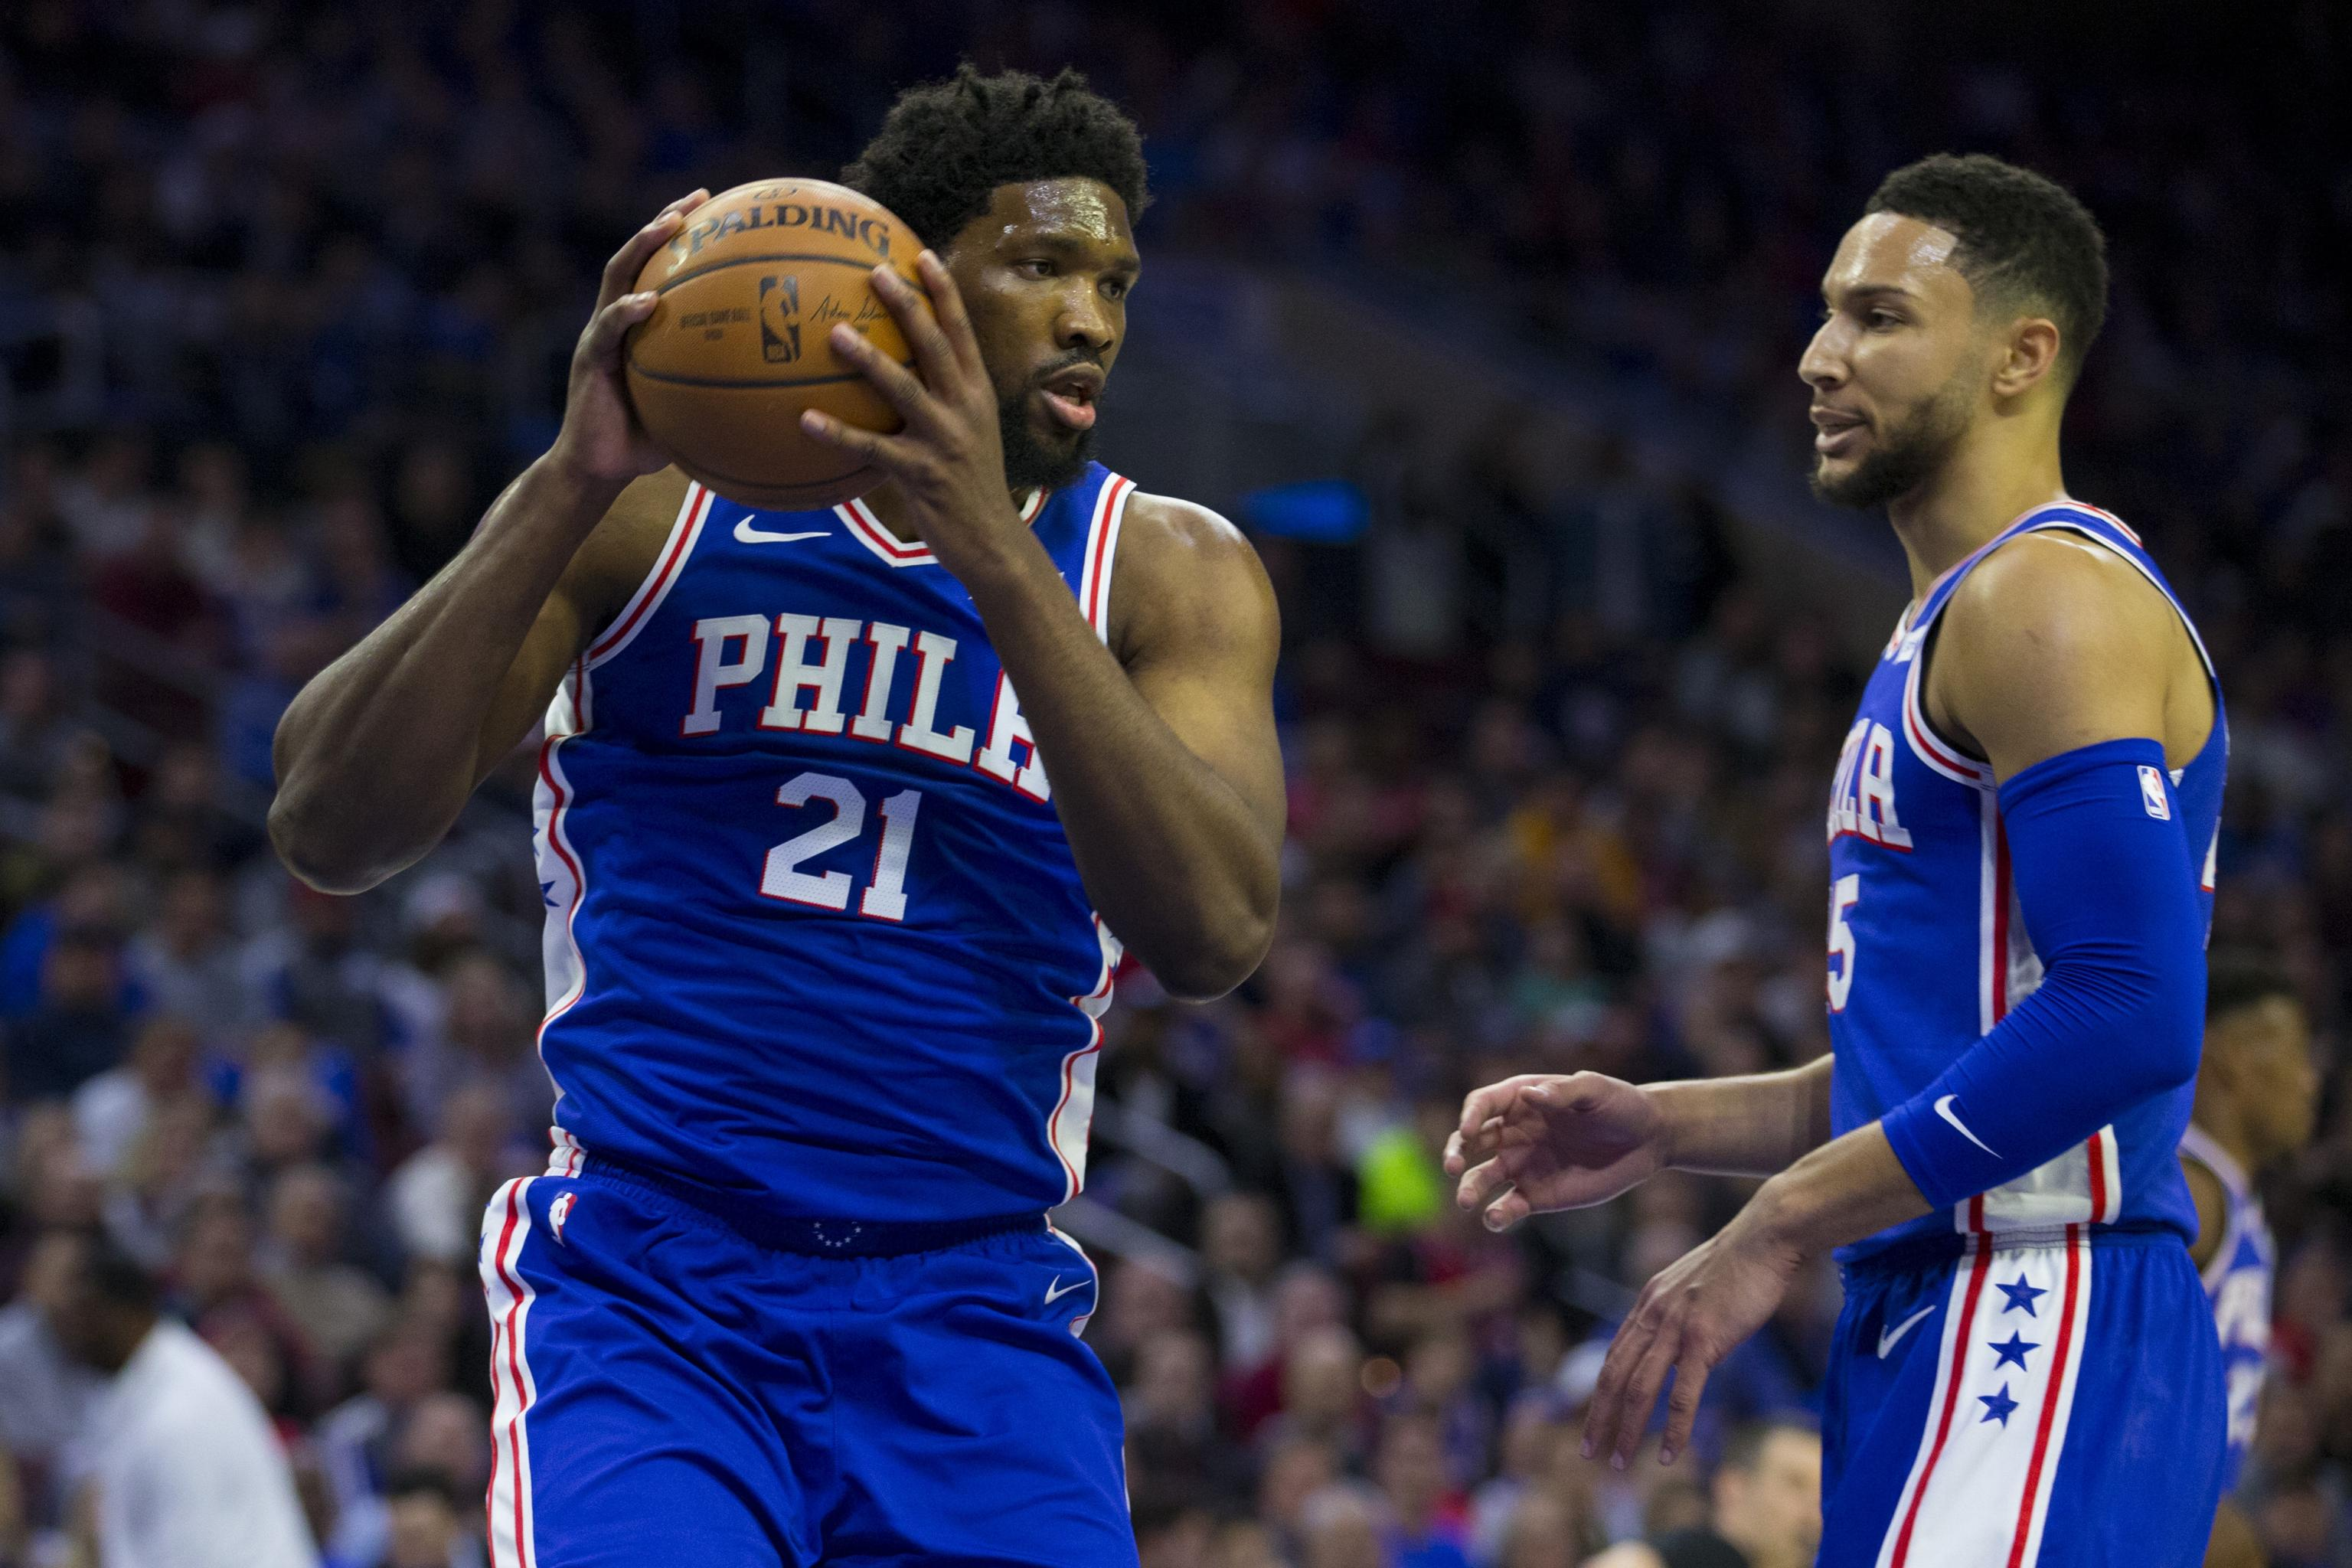 b752aa7d2449 Joel Embiid Says He Probably Should Have Been Ejected for Elbowing Jarrett  Allen